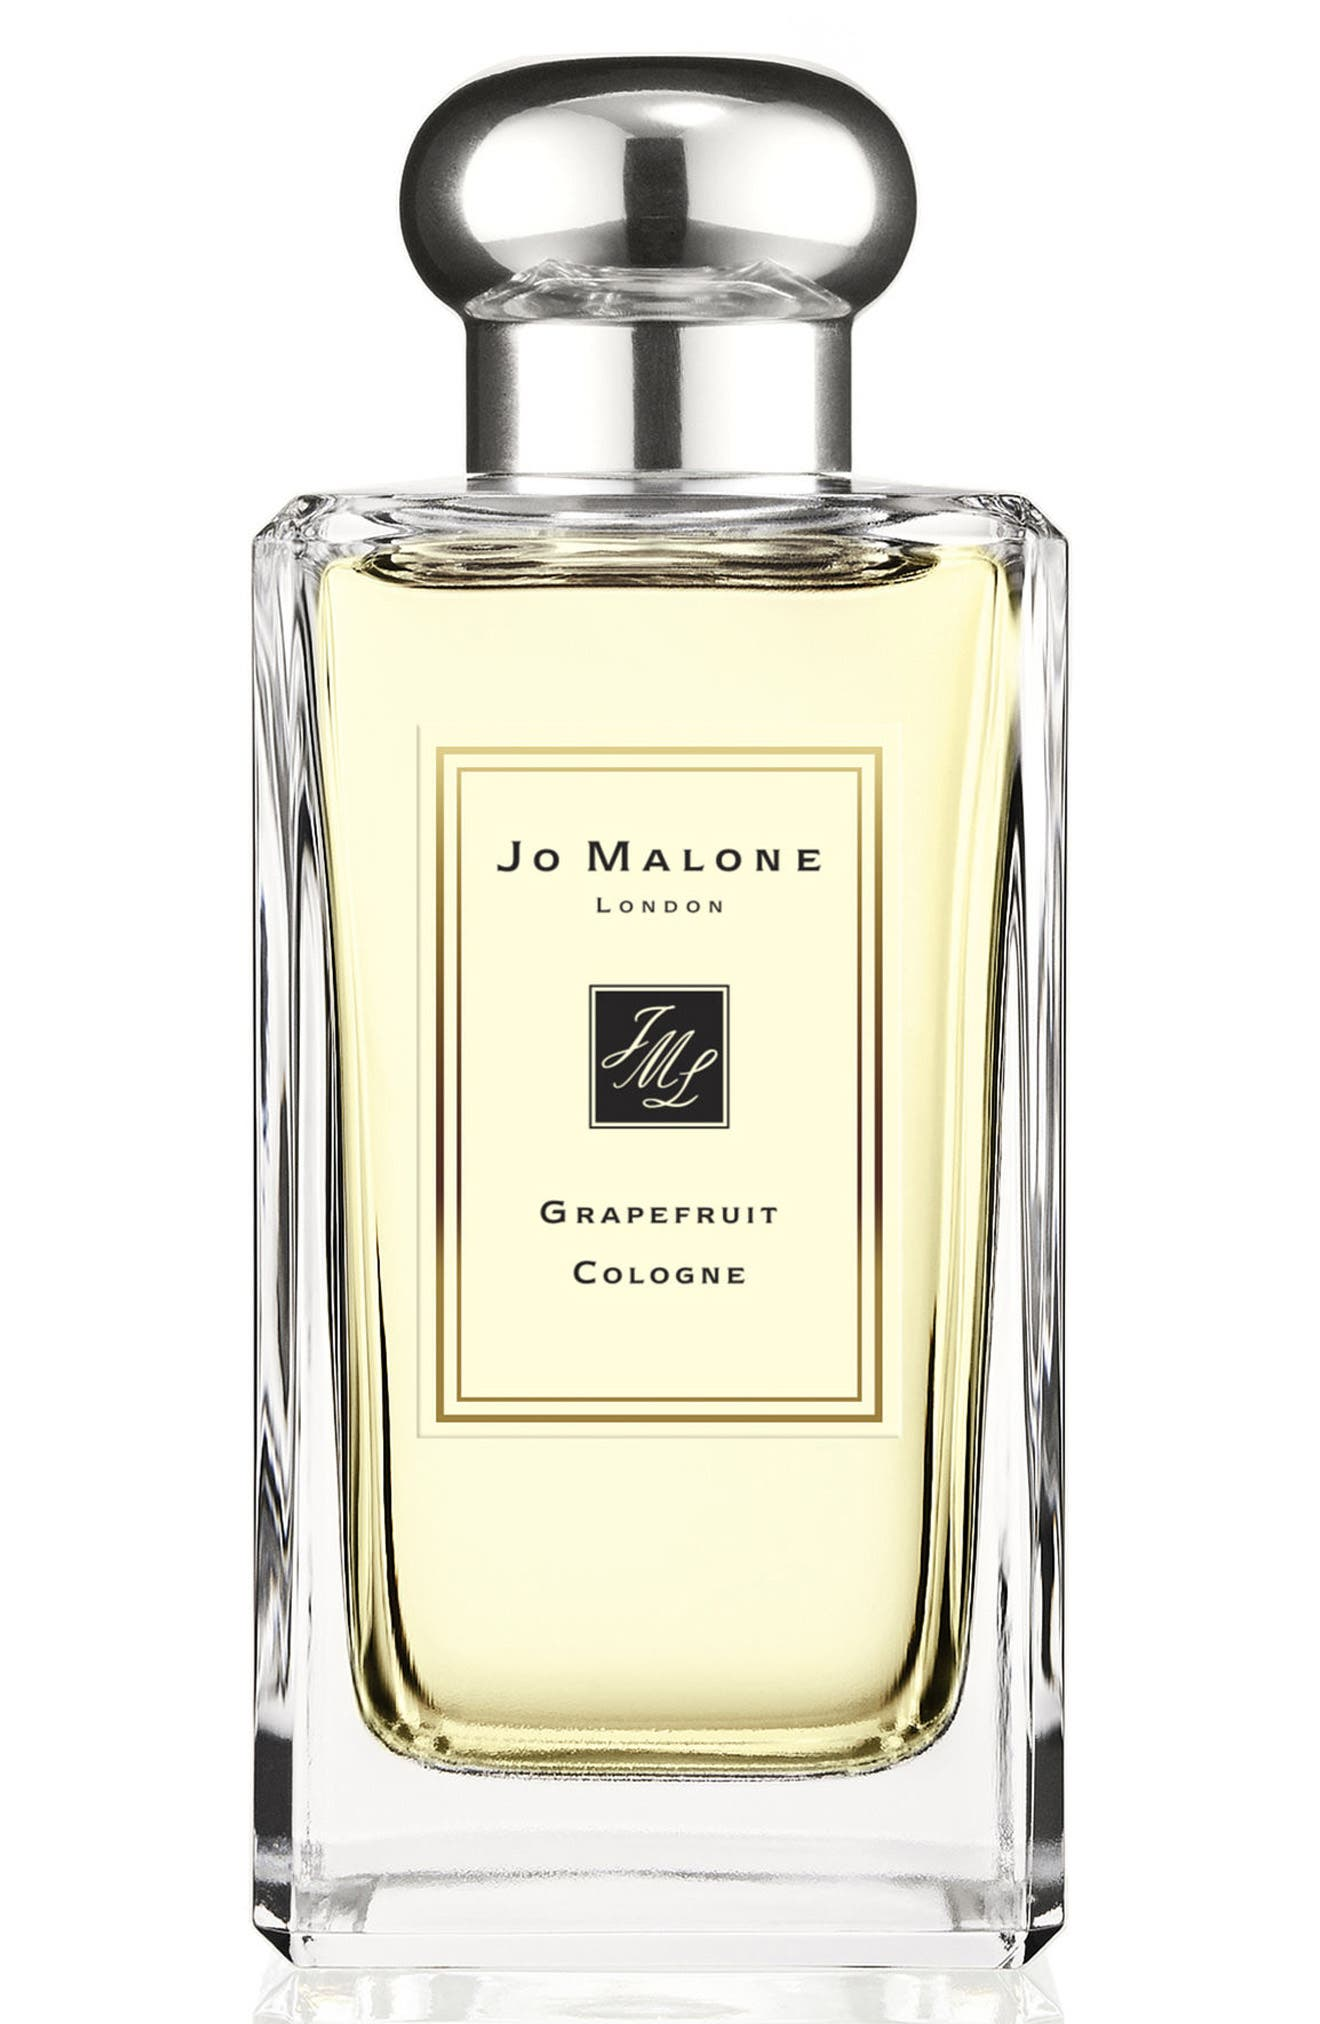 Jo Malone London™ Grapefruit Cologne (3.4 oz.)